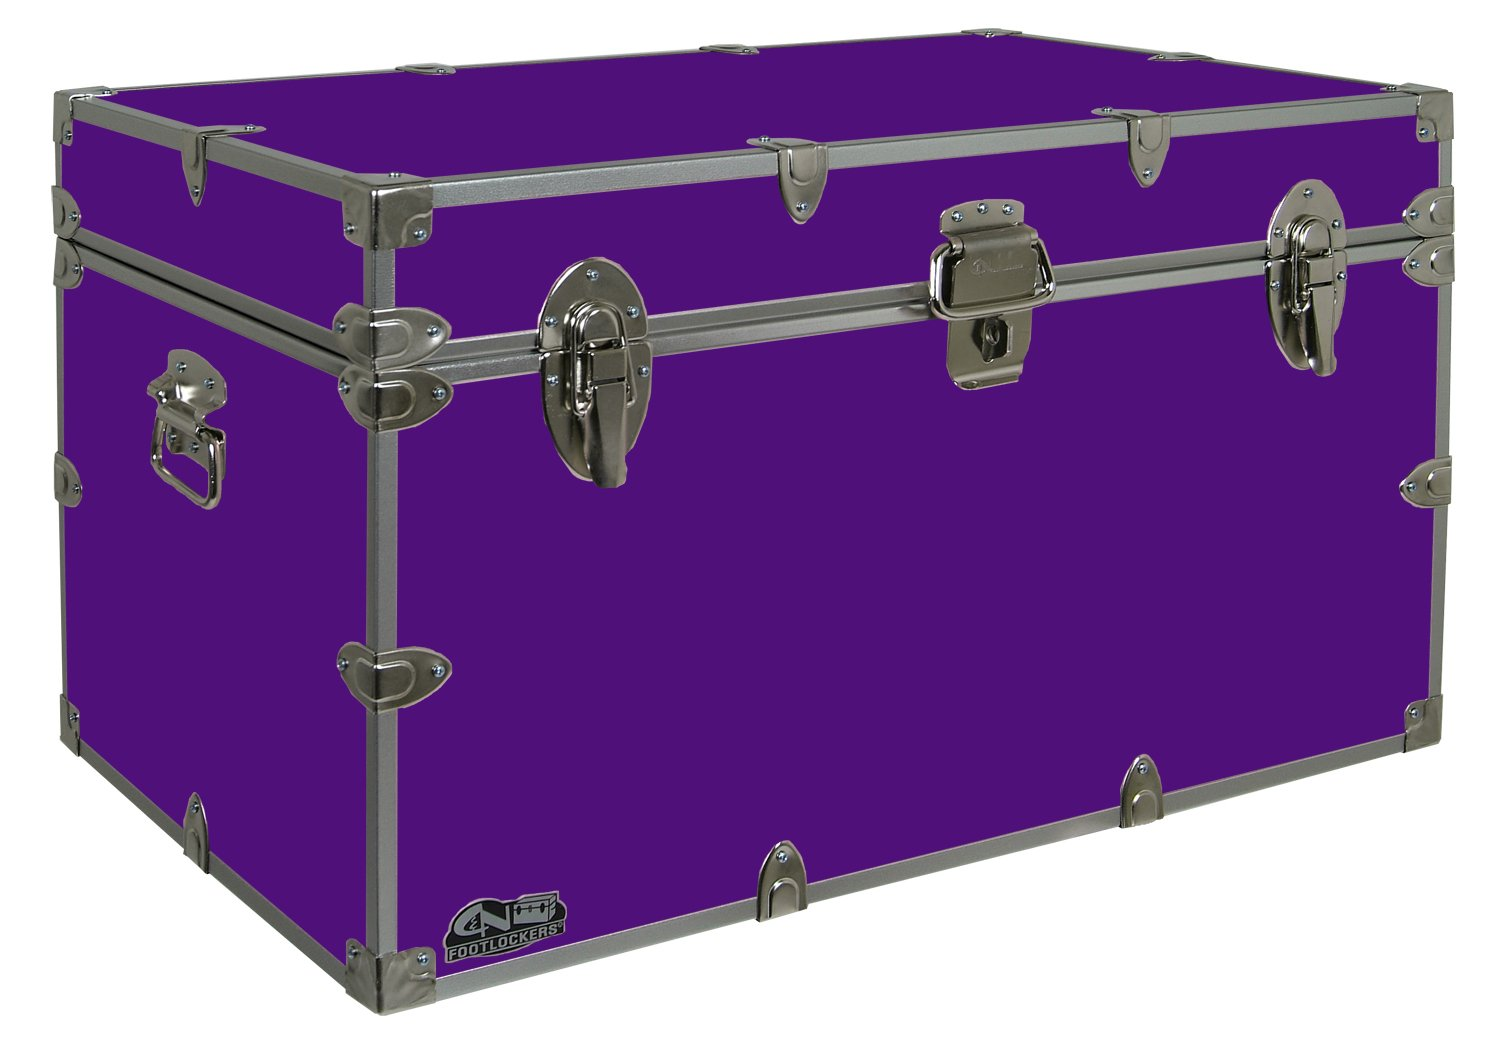 C&N Footlockers Graduate Storage Trunk - Large College Dorm Chest - Durable with Lid Stay - 32 x 18 x 18.5 Inches (Purple)